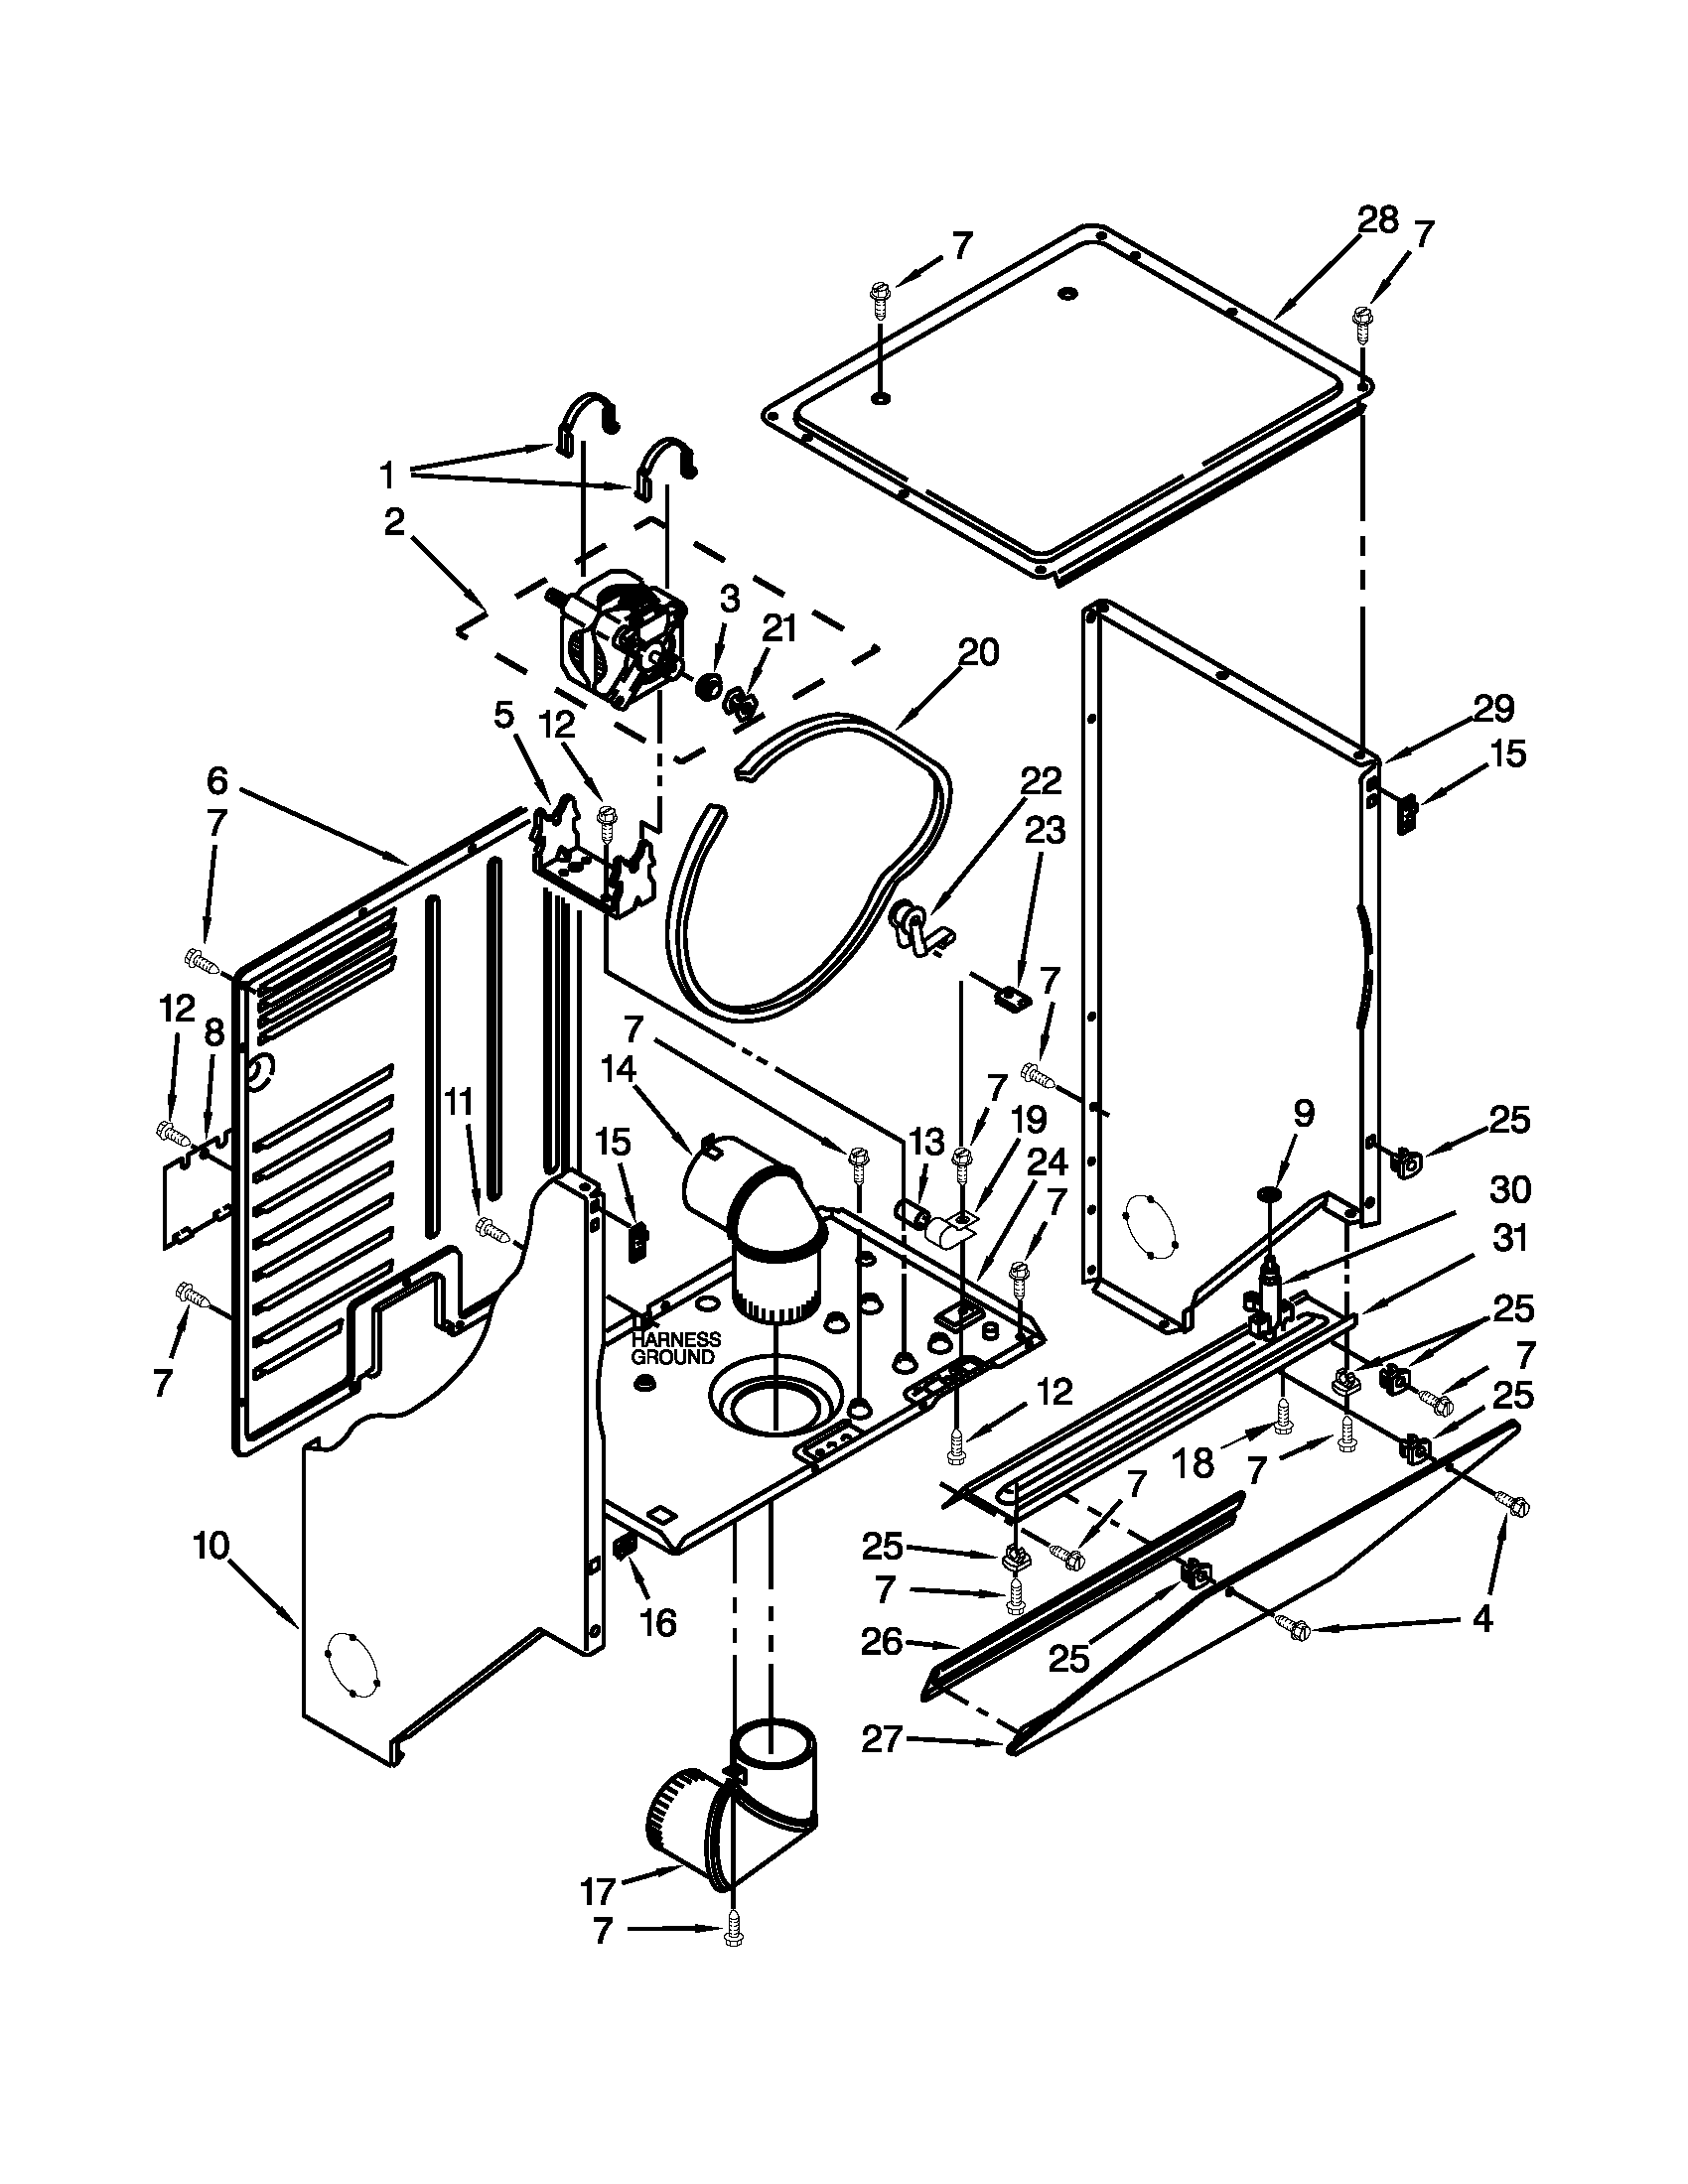 Maytag Dryer Parts Diagram Also Kenmore Electric Dryer Wiring Diagram